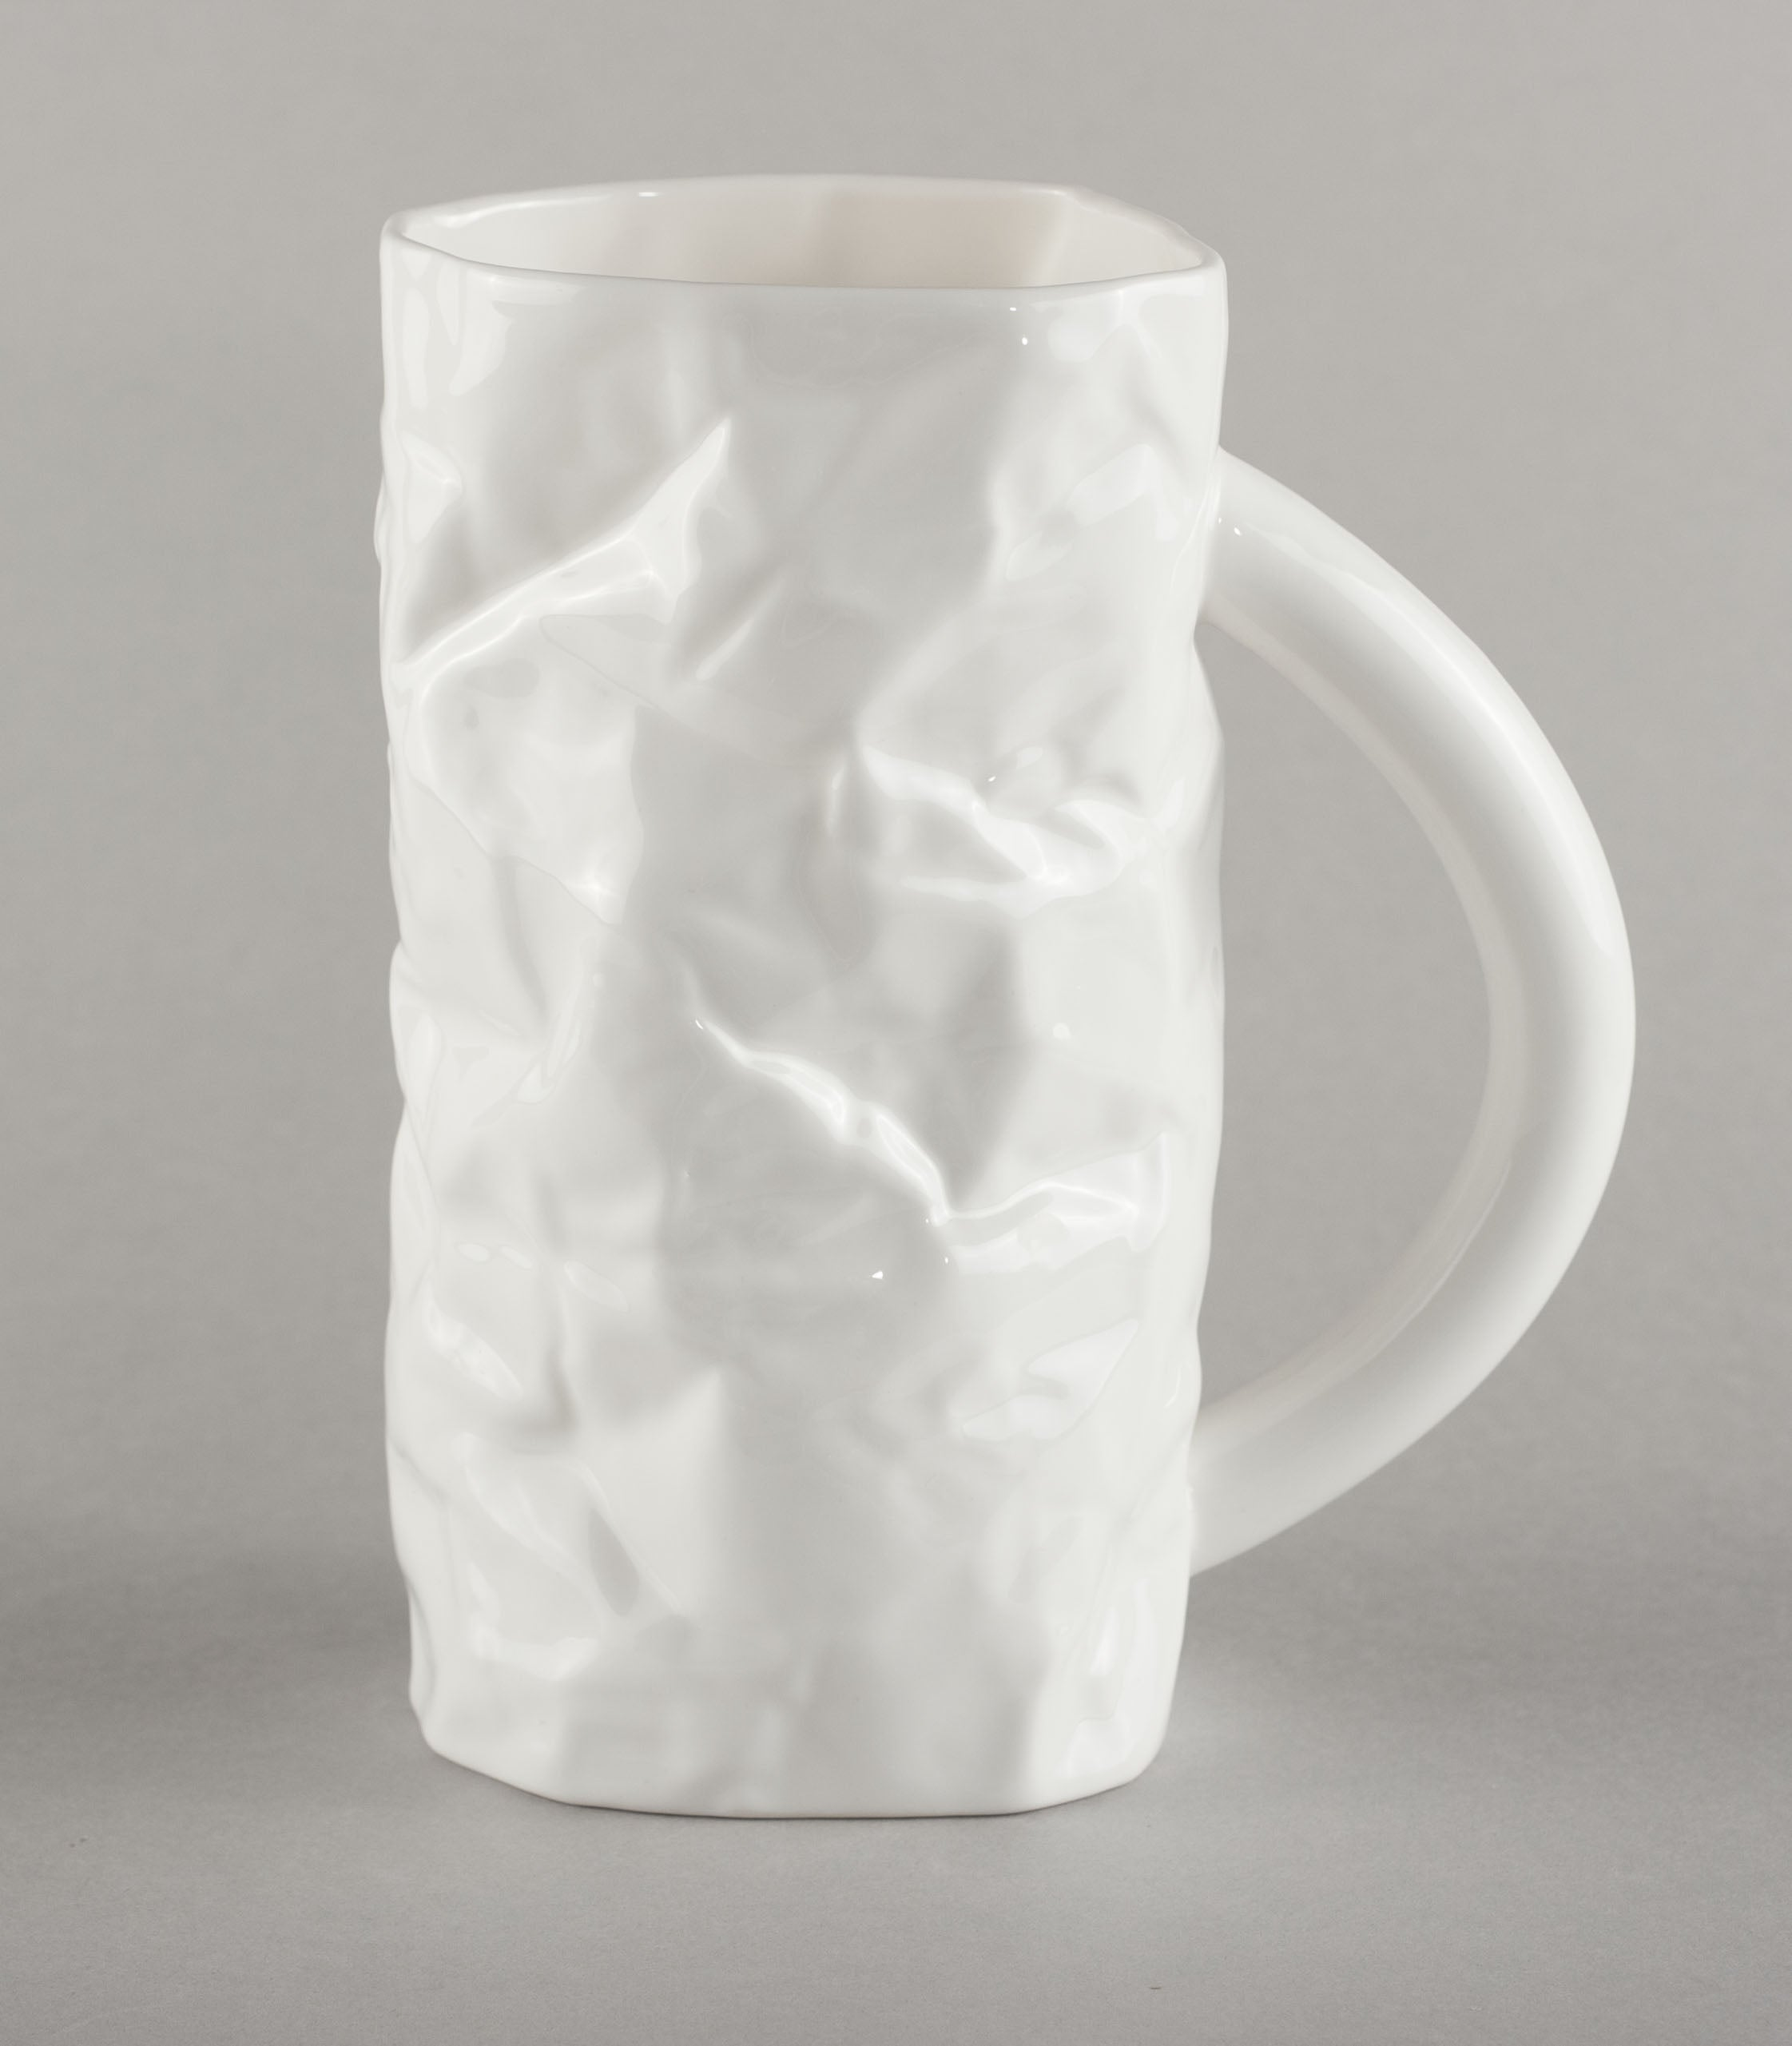 Porcelain Crumpled Beer Mug